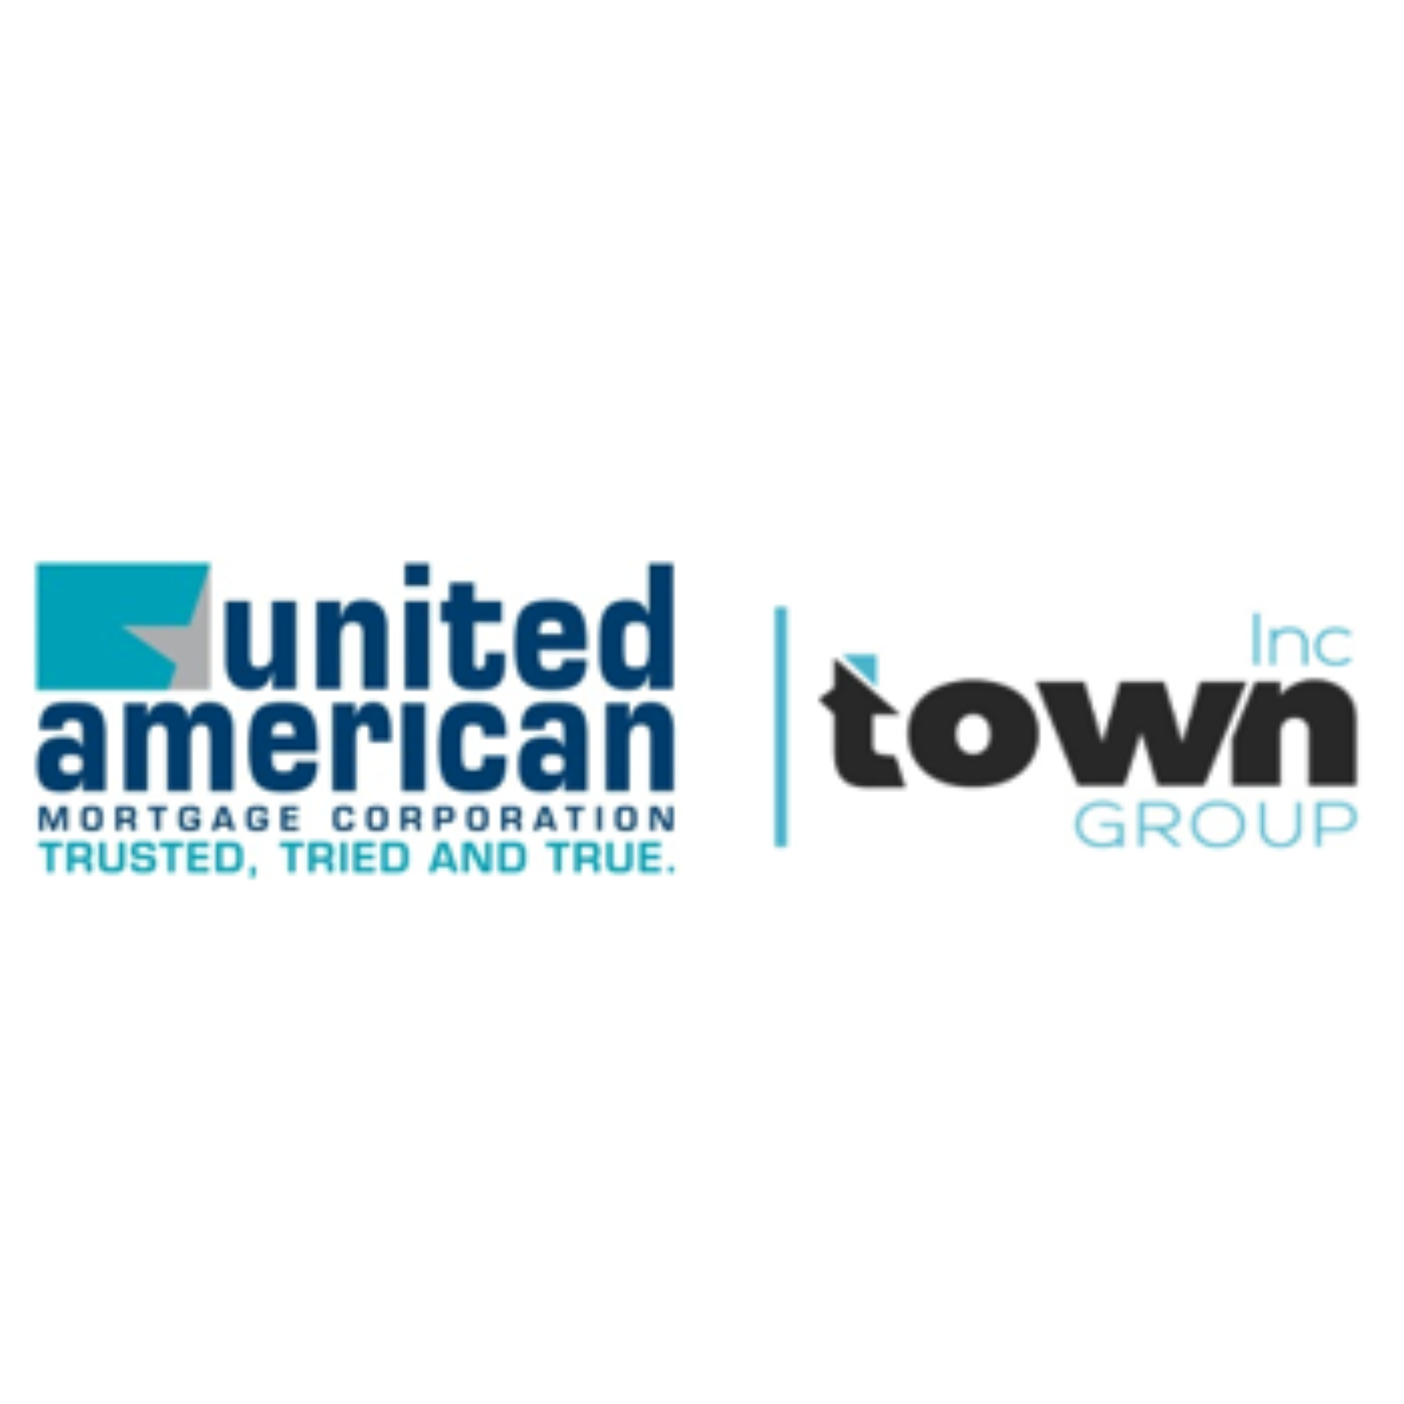 The Town Group at United American Mortgage Corp